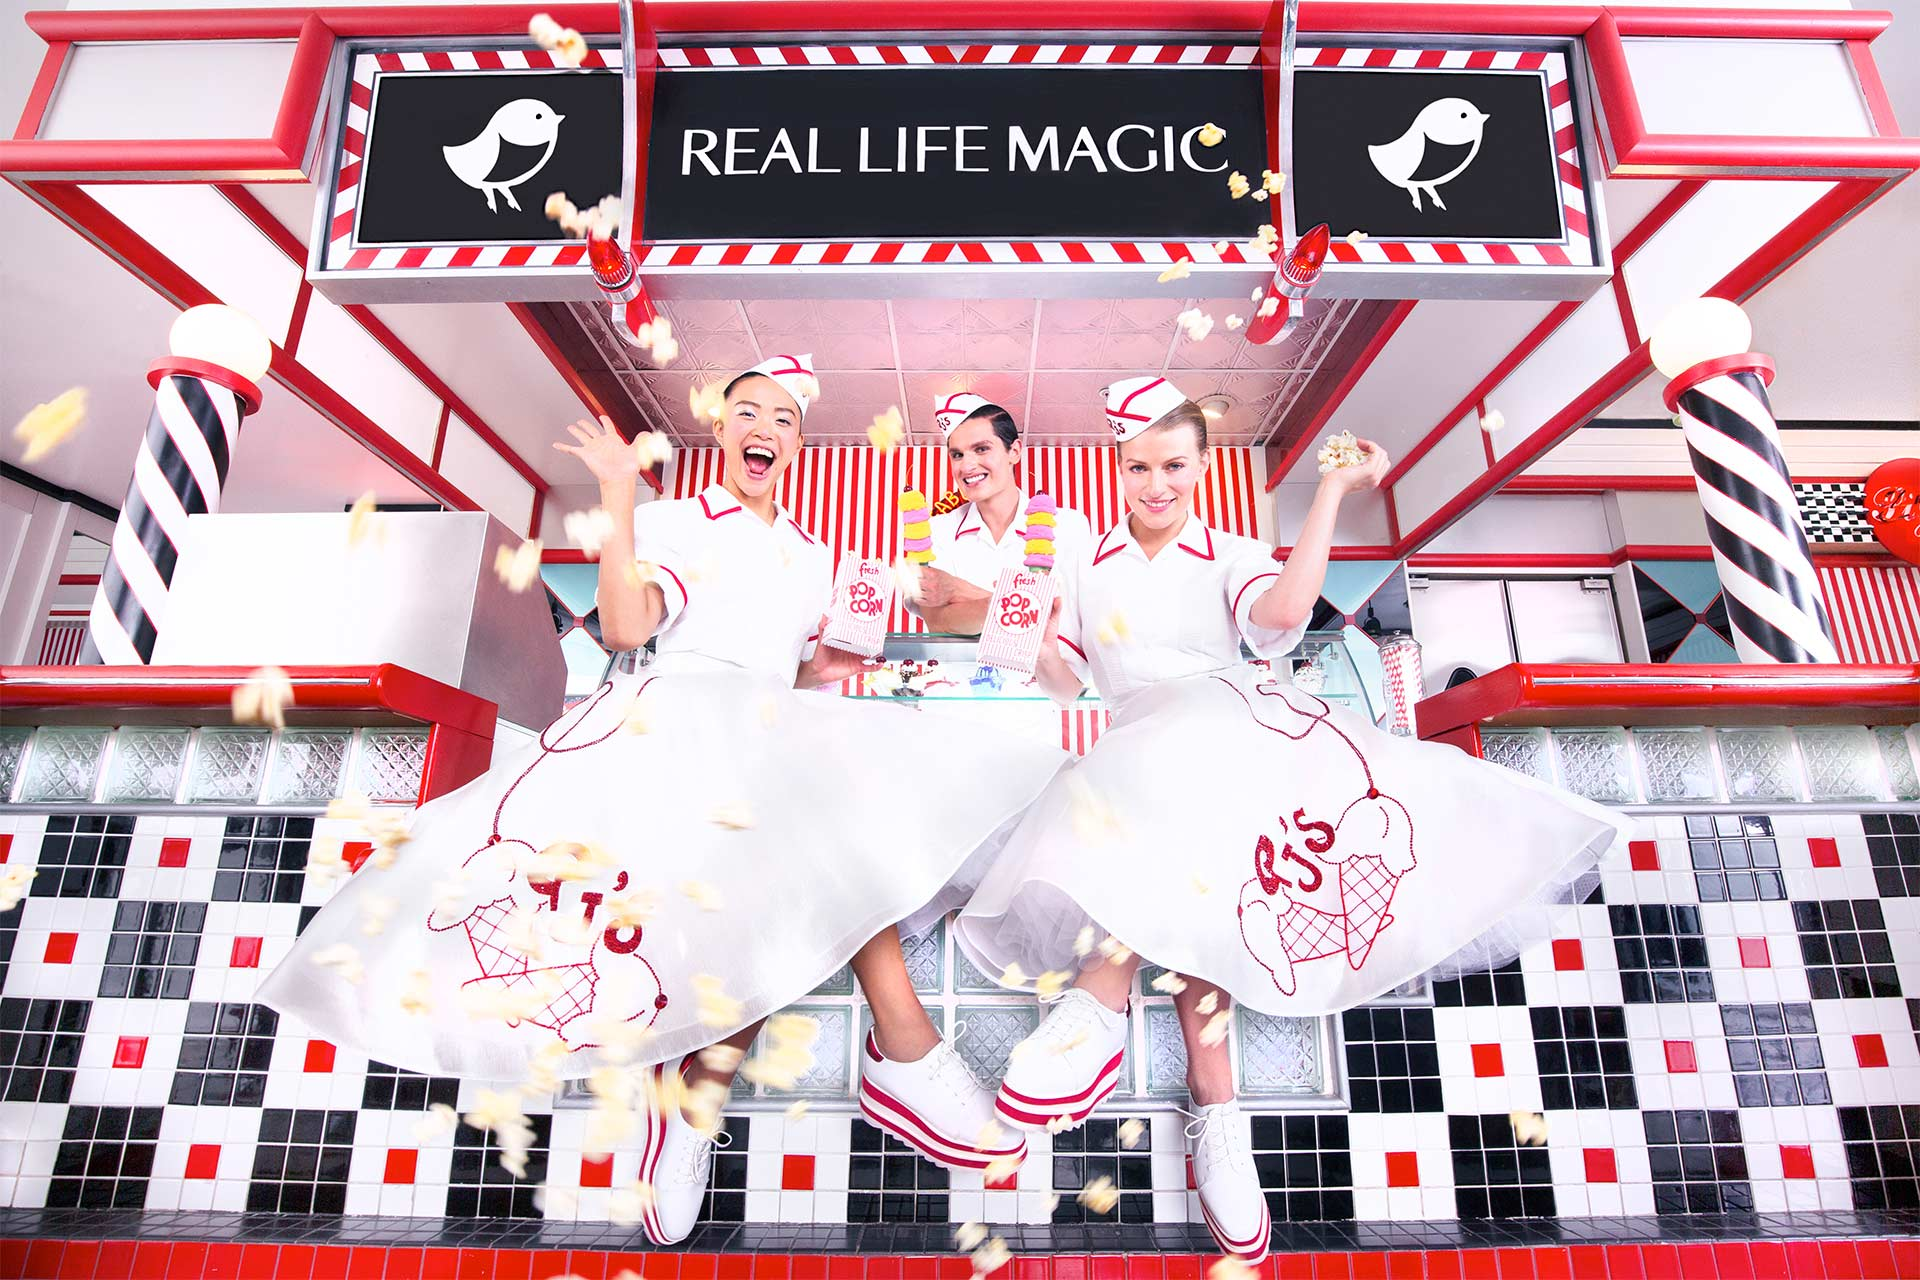 """Three women dressed in 60's style uniforms in front of an ice cream shop with a sign that says """"Real Life Magic"""""""